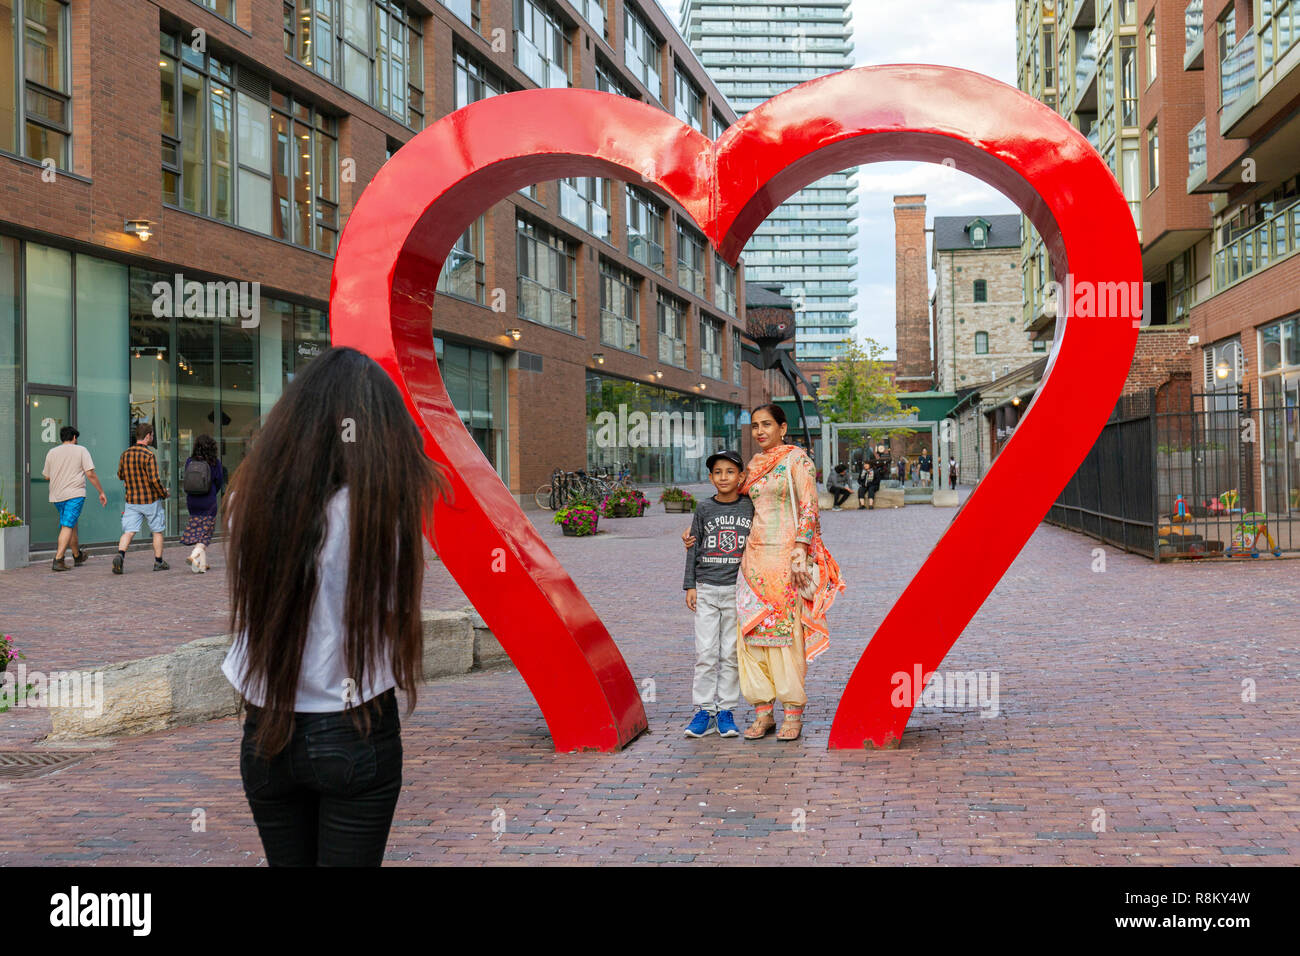 Canada, Province of Ontario, Toronto, Distillery Historic District, former home to the Gooderham and Worts Distillery, a pedestrian district dedicated to art, culture, commerce and entertainment, giant heart, installation called Under the Mistletoe - Stock Image